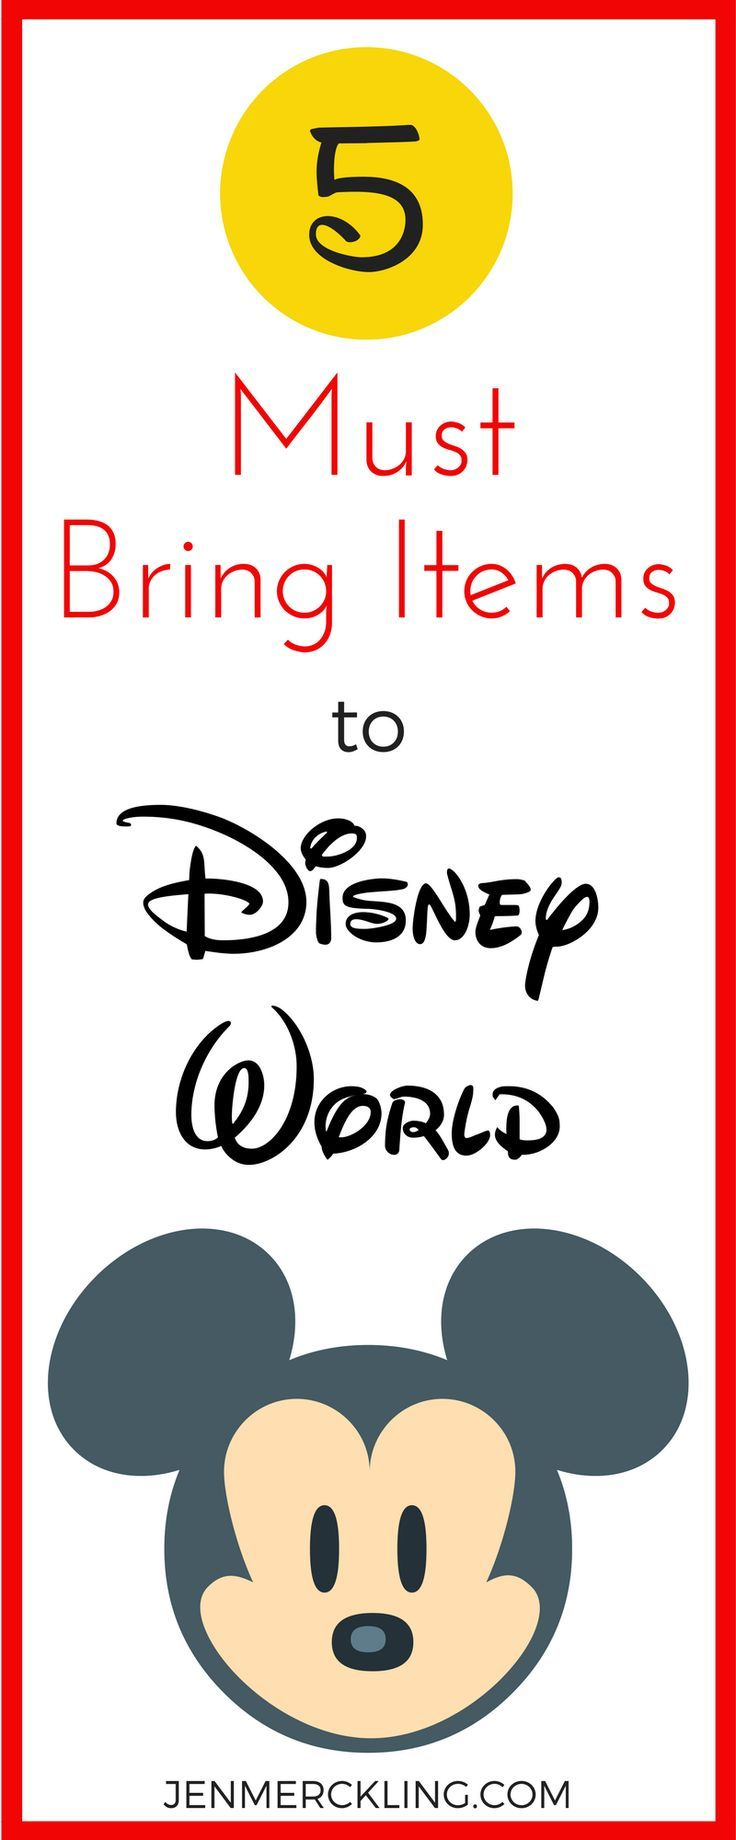 Perfect advice for must have items on your Disney trip!